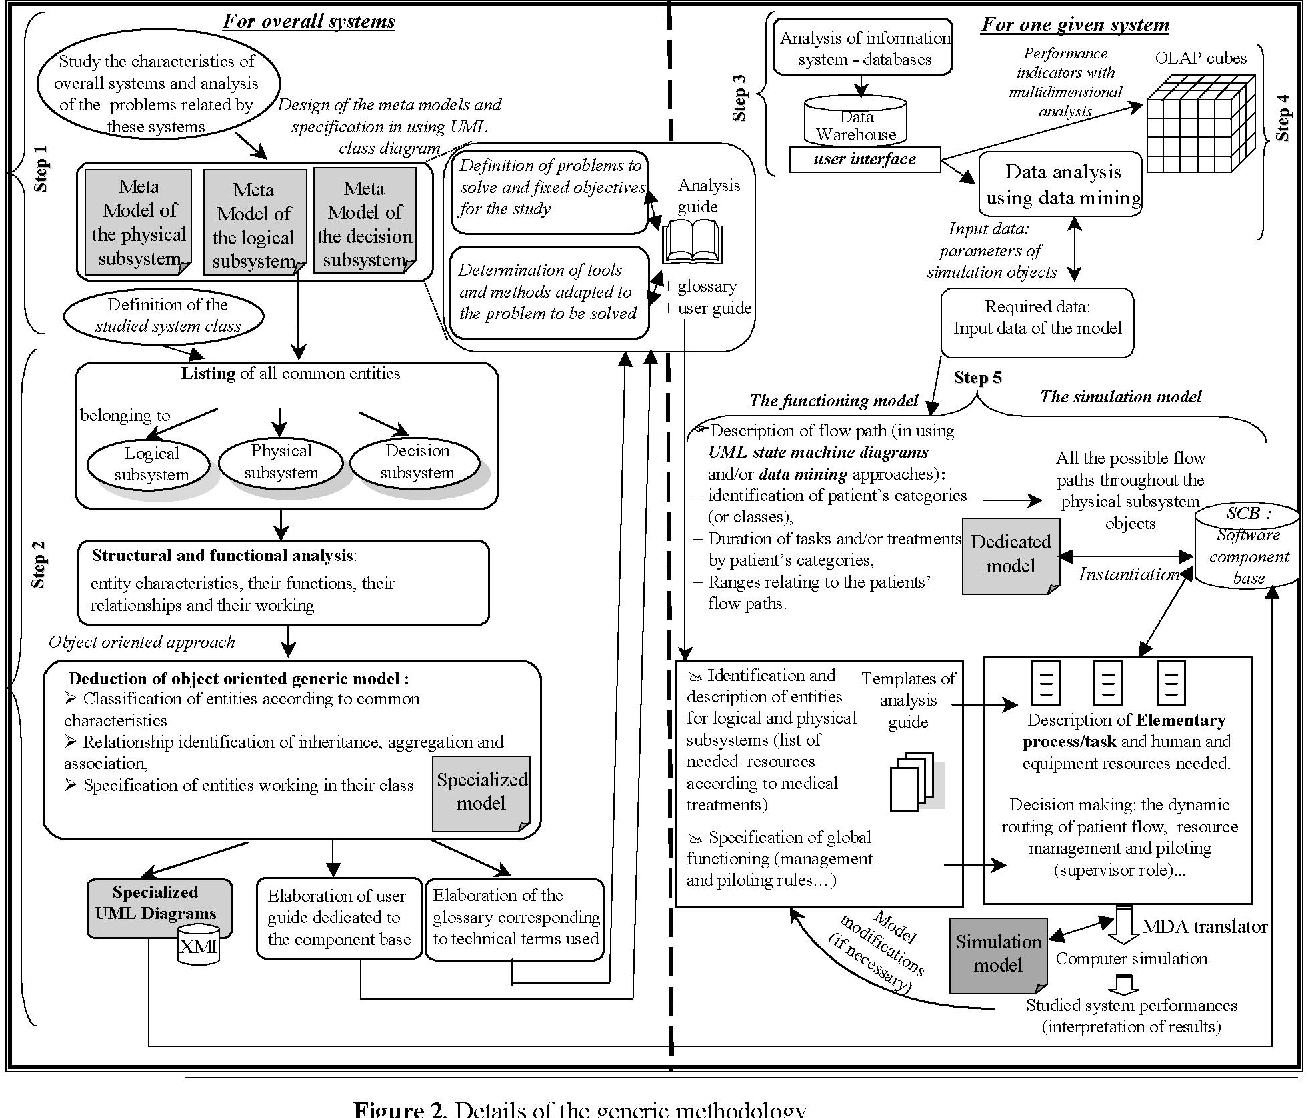 Dialysis design guide array a modeling methodology dedicated to simulation and based on generic rh semanticscholar org fandeluxe Choice Image